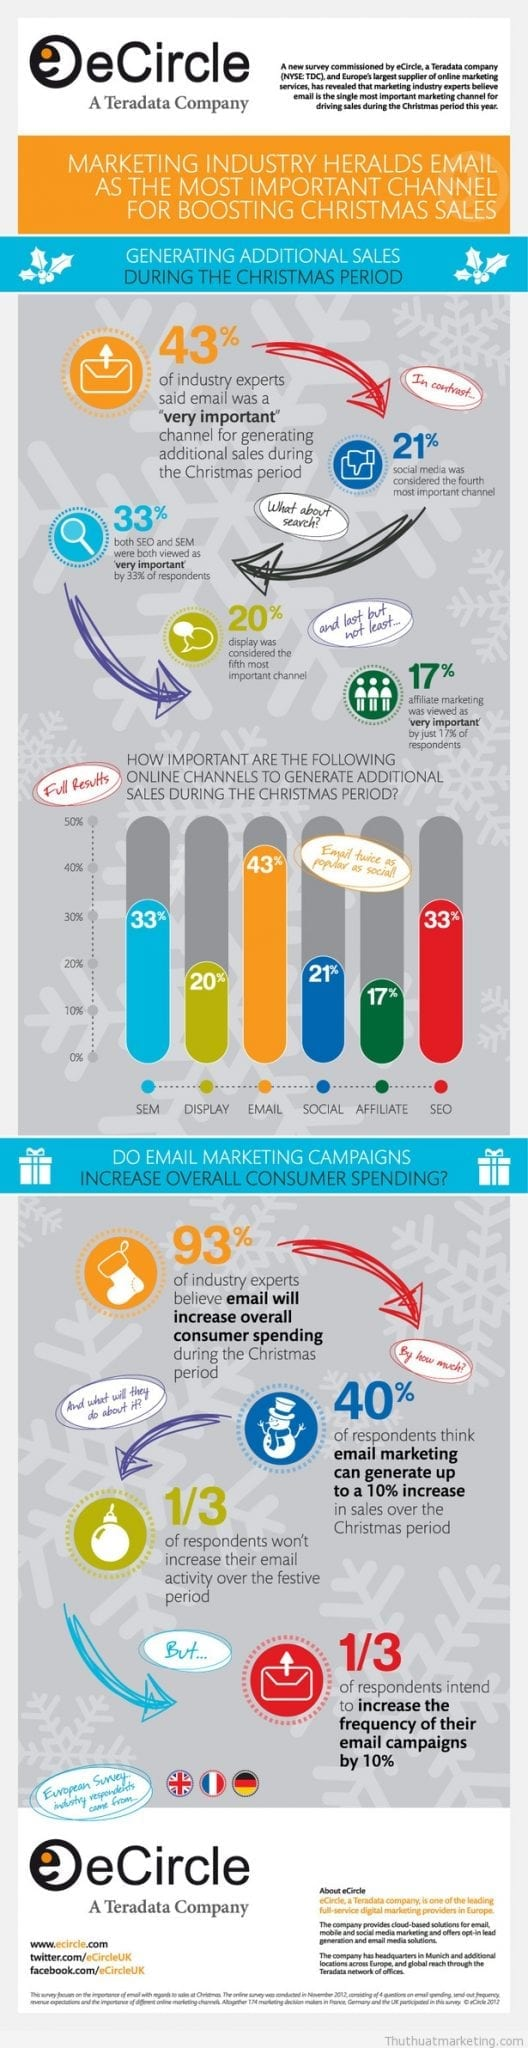 thủ thuật marketing - email marketing - infographic